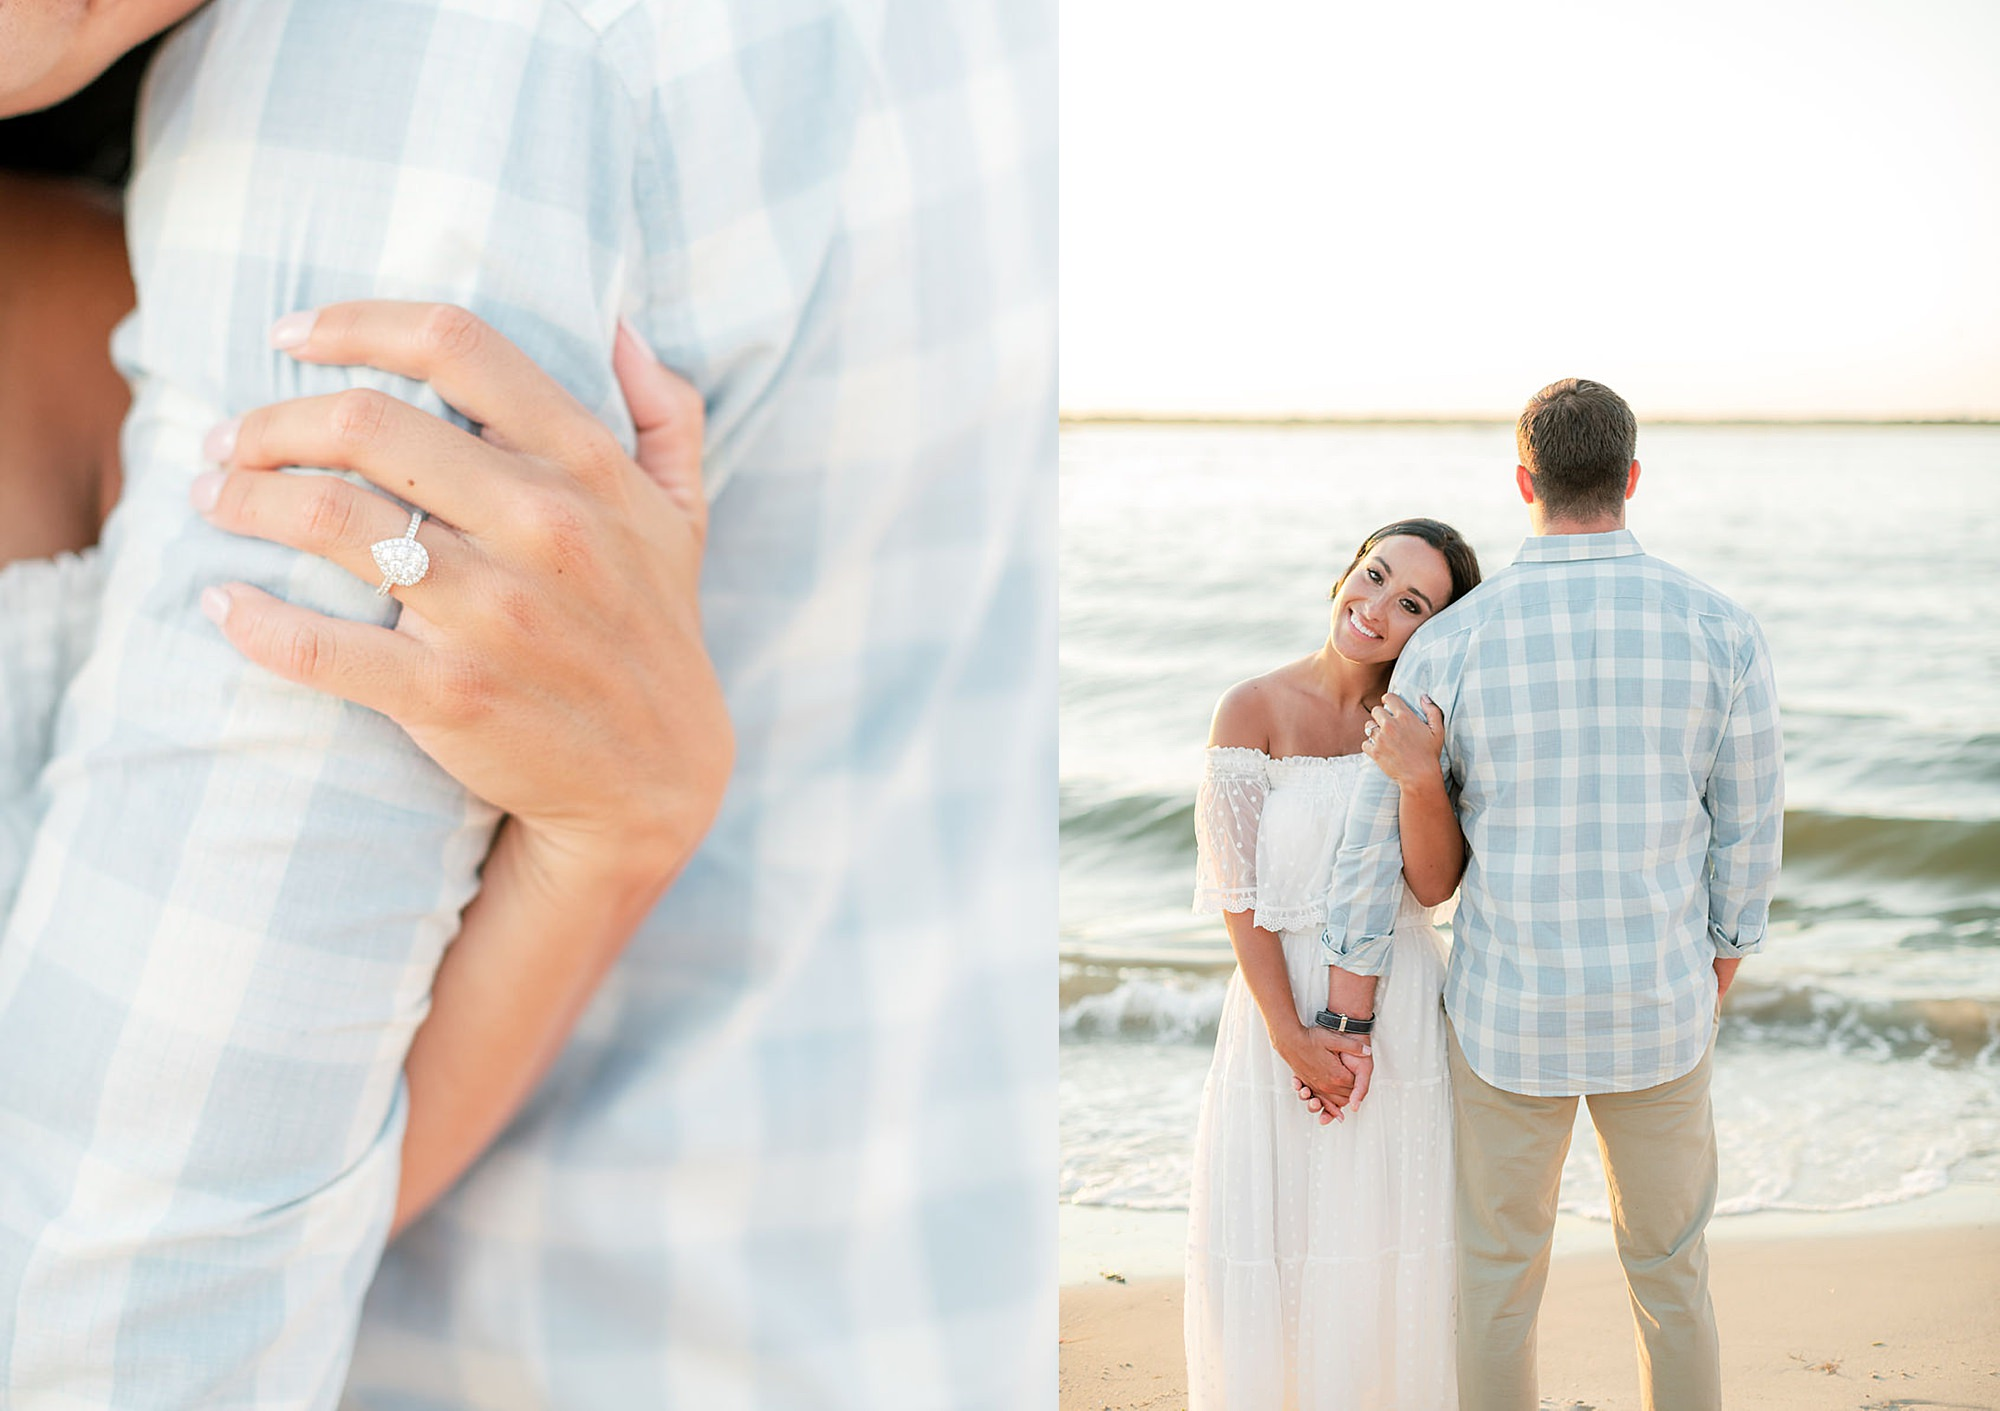 Airy and Bright Engagement Photography in Ocean City NJ by Magdalena Studios 0036